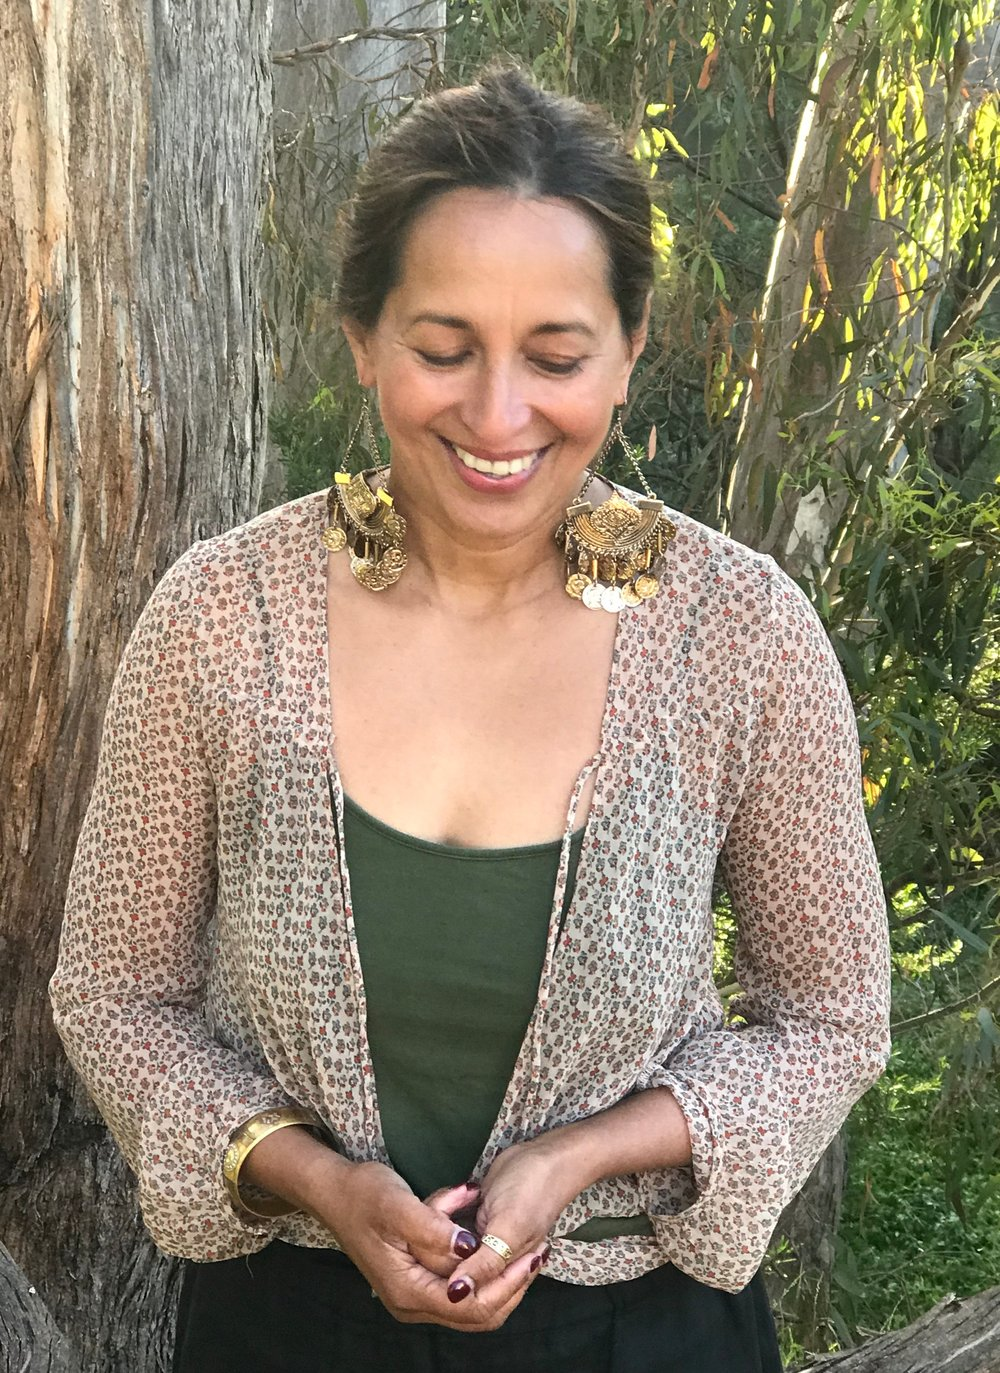 AVRIL BASTIANSZ - Teacher & Coach of Spiritual and Holistic Wellbeing through Yoga, Meditation, Nutrition, Ayurveda and experiential journeys, supporting women on their path of Self-discovery.